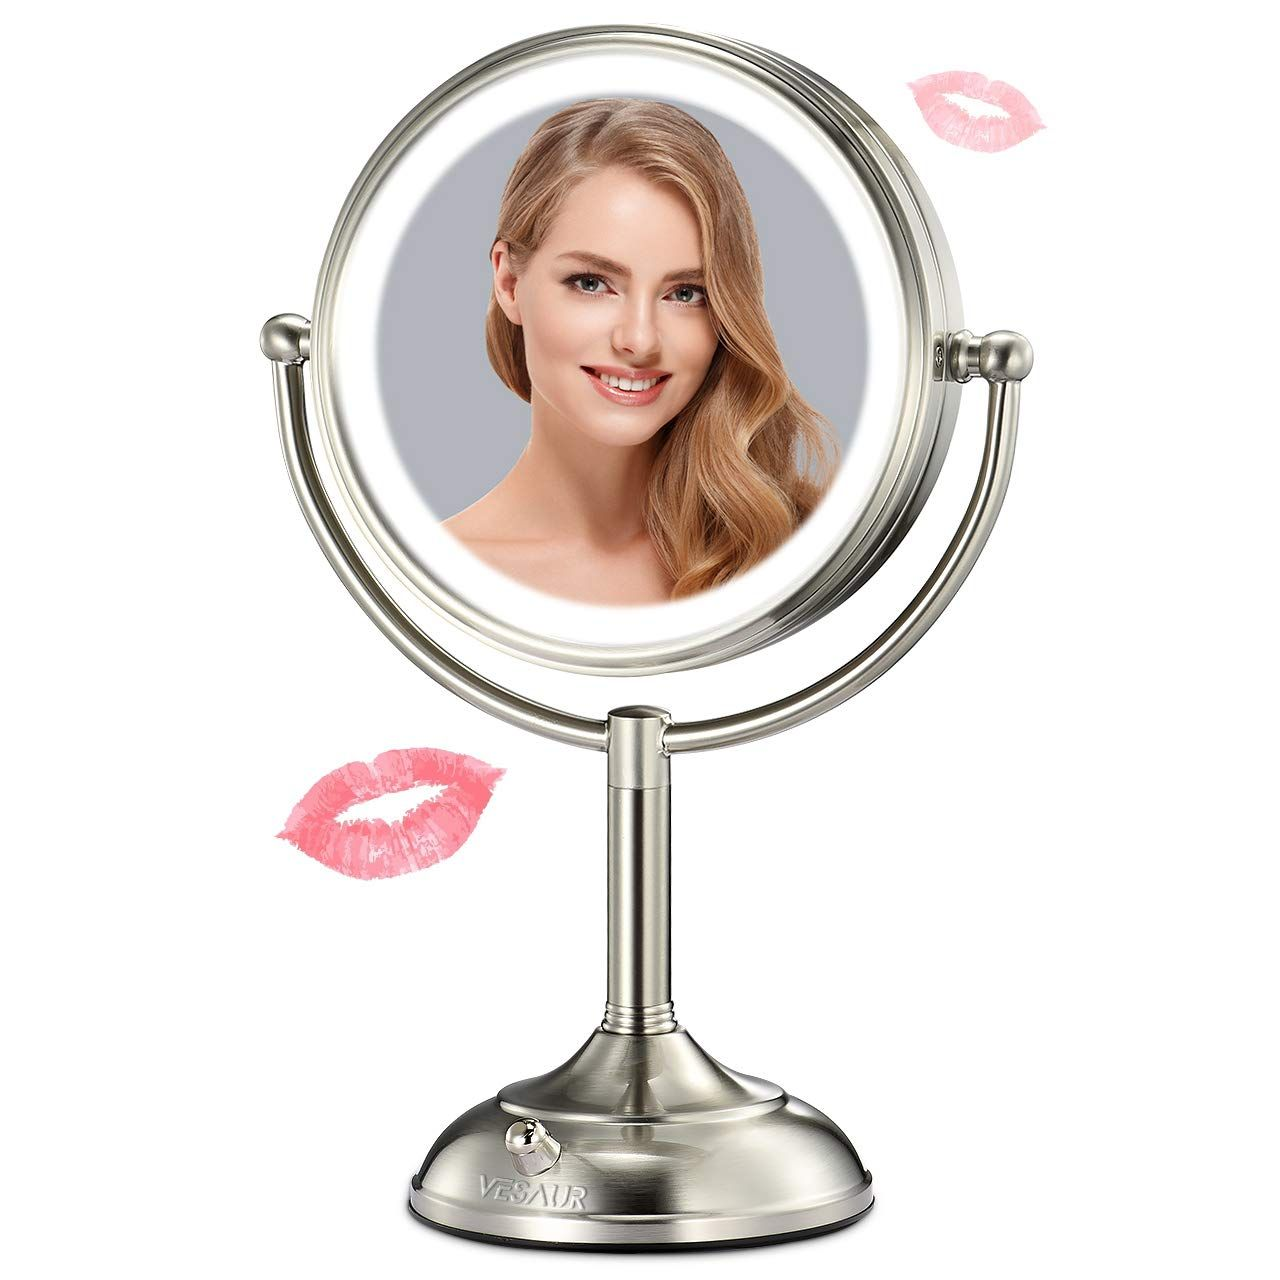 Vesaur Professional 7 5 Lighted Makeup Mirror 10x Magnifying